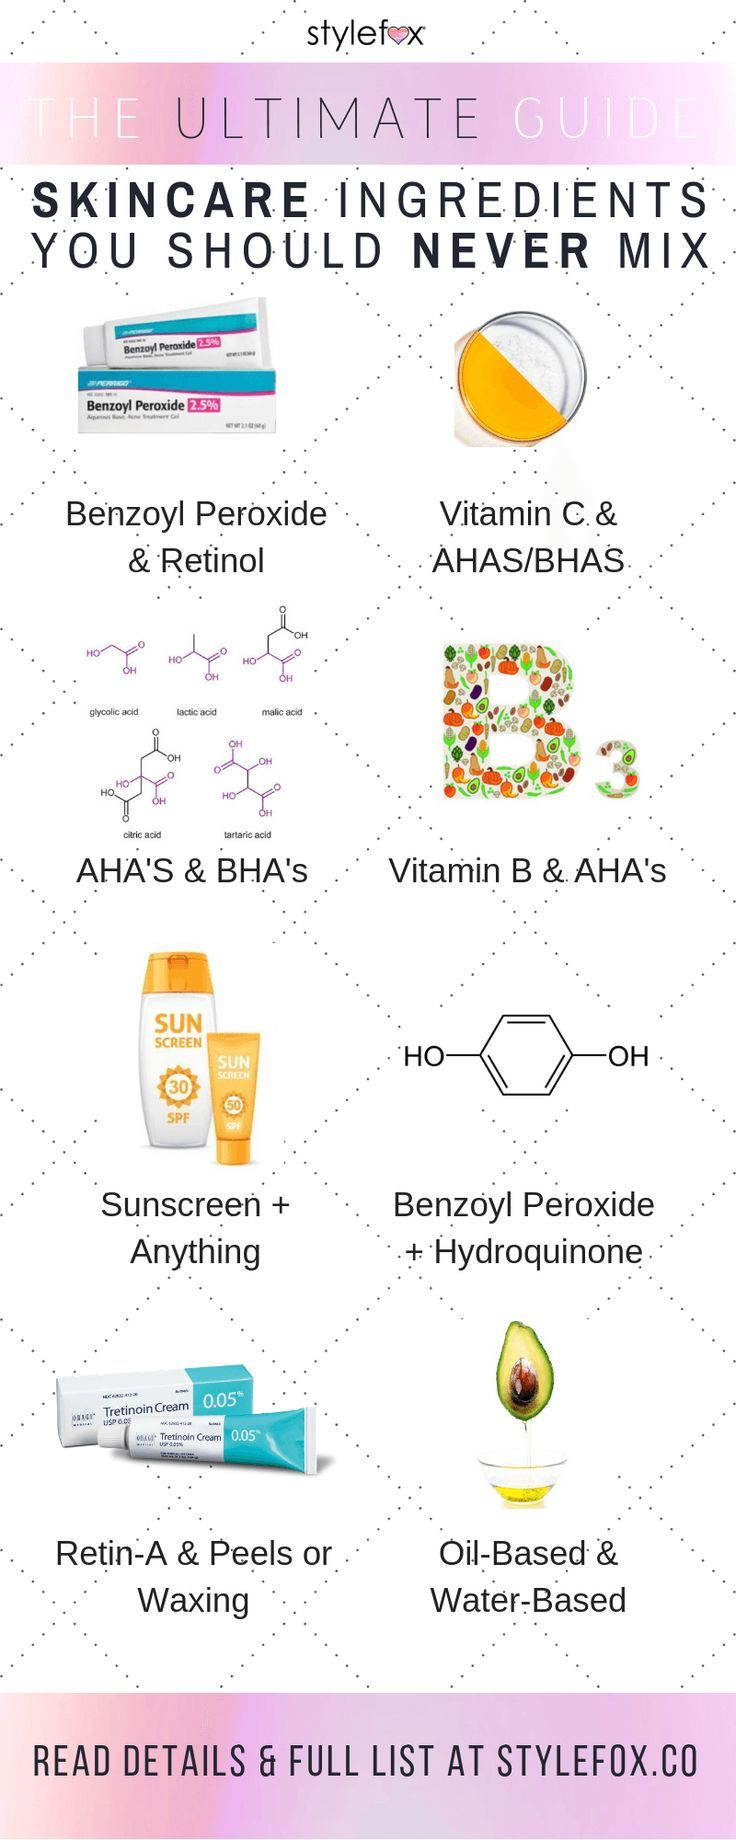 The Ultimate Guide Skincare Ingredients You Should Never Mix Skincare Ingredients Skin Care Essentials Skincare Facts